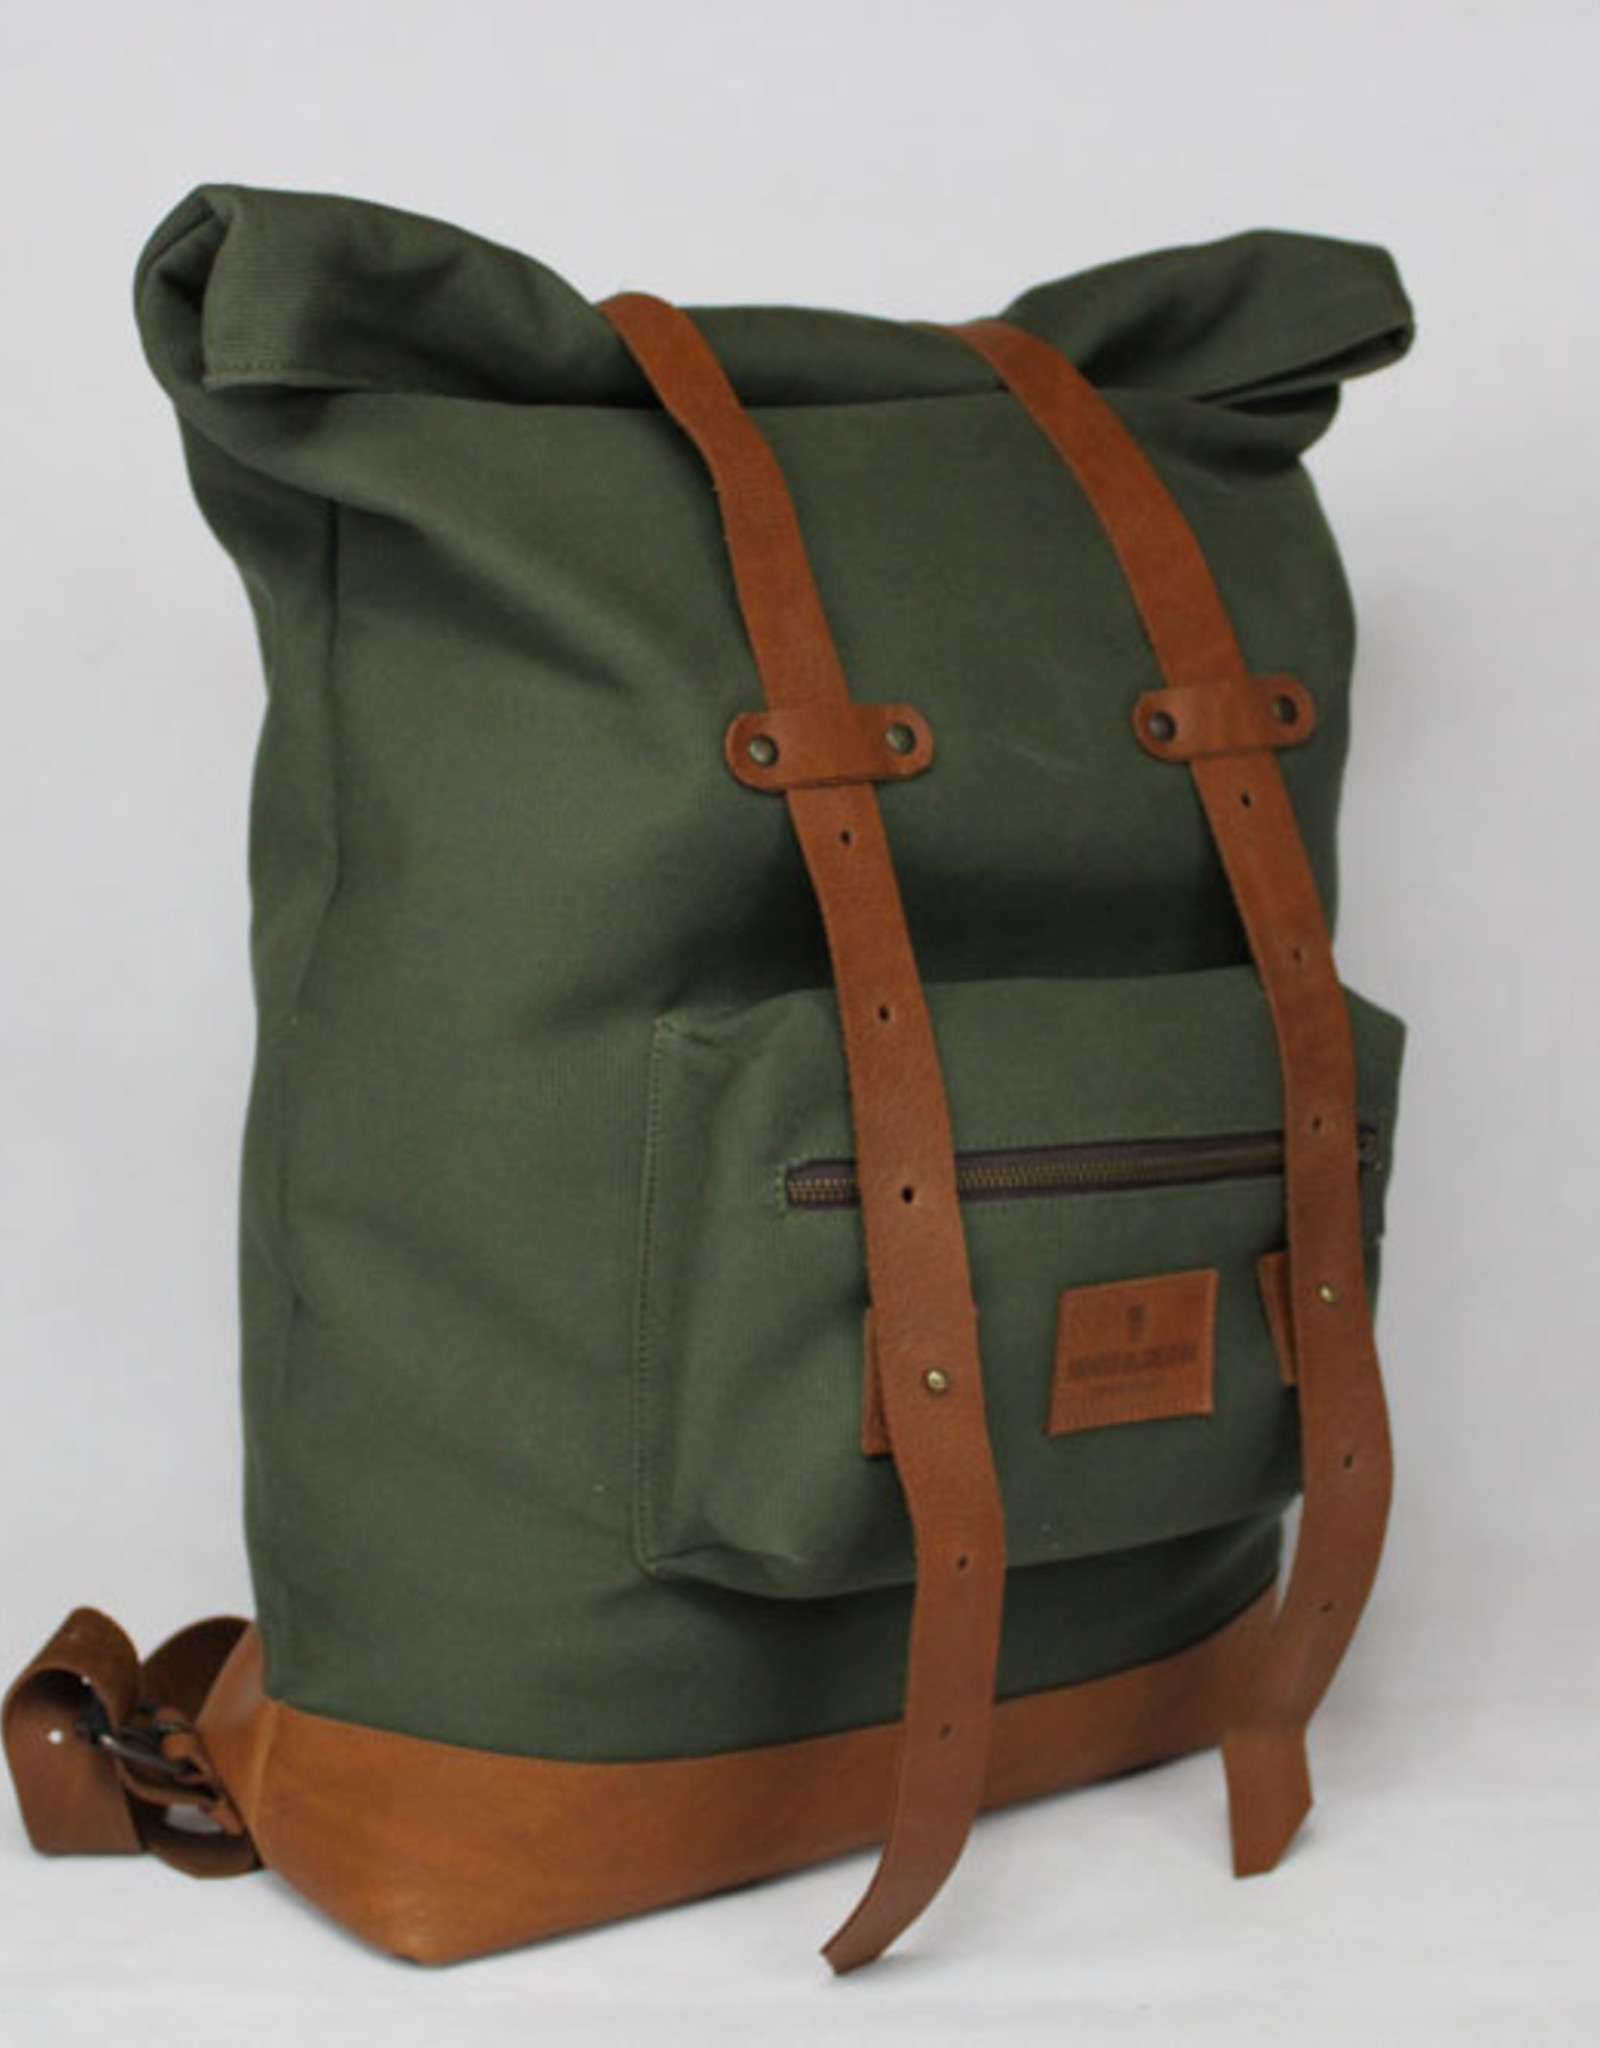 MONTE BLANCO 04 ANDES BACKPACK CANVAS Y PIEL VERDE/TAN, MONTE BLANCO 04